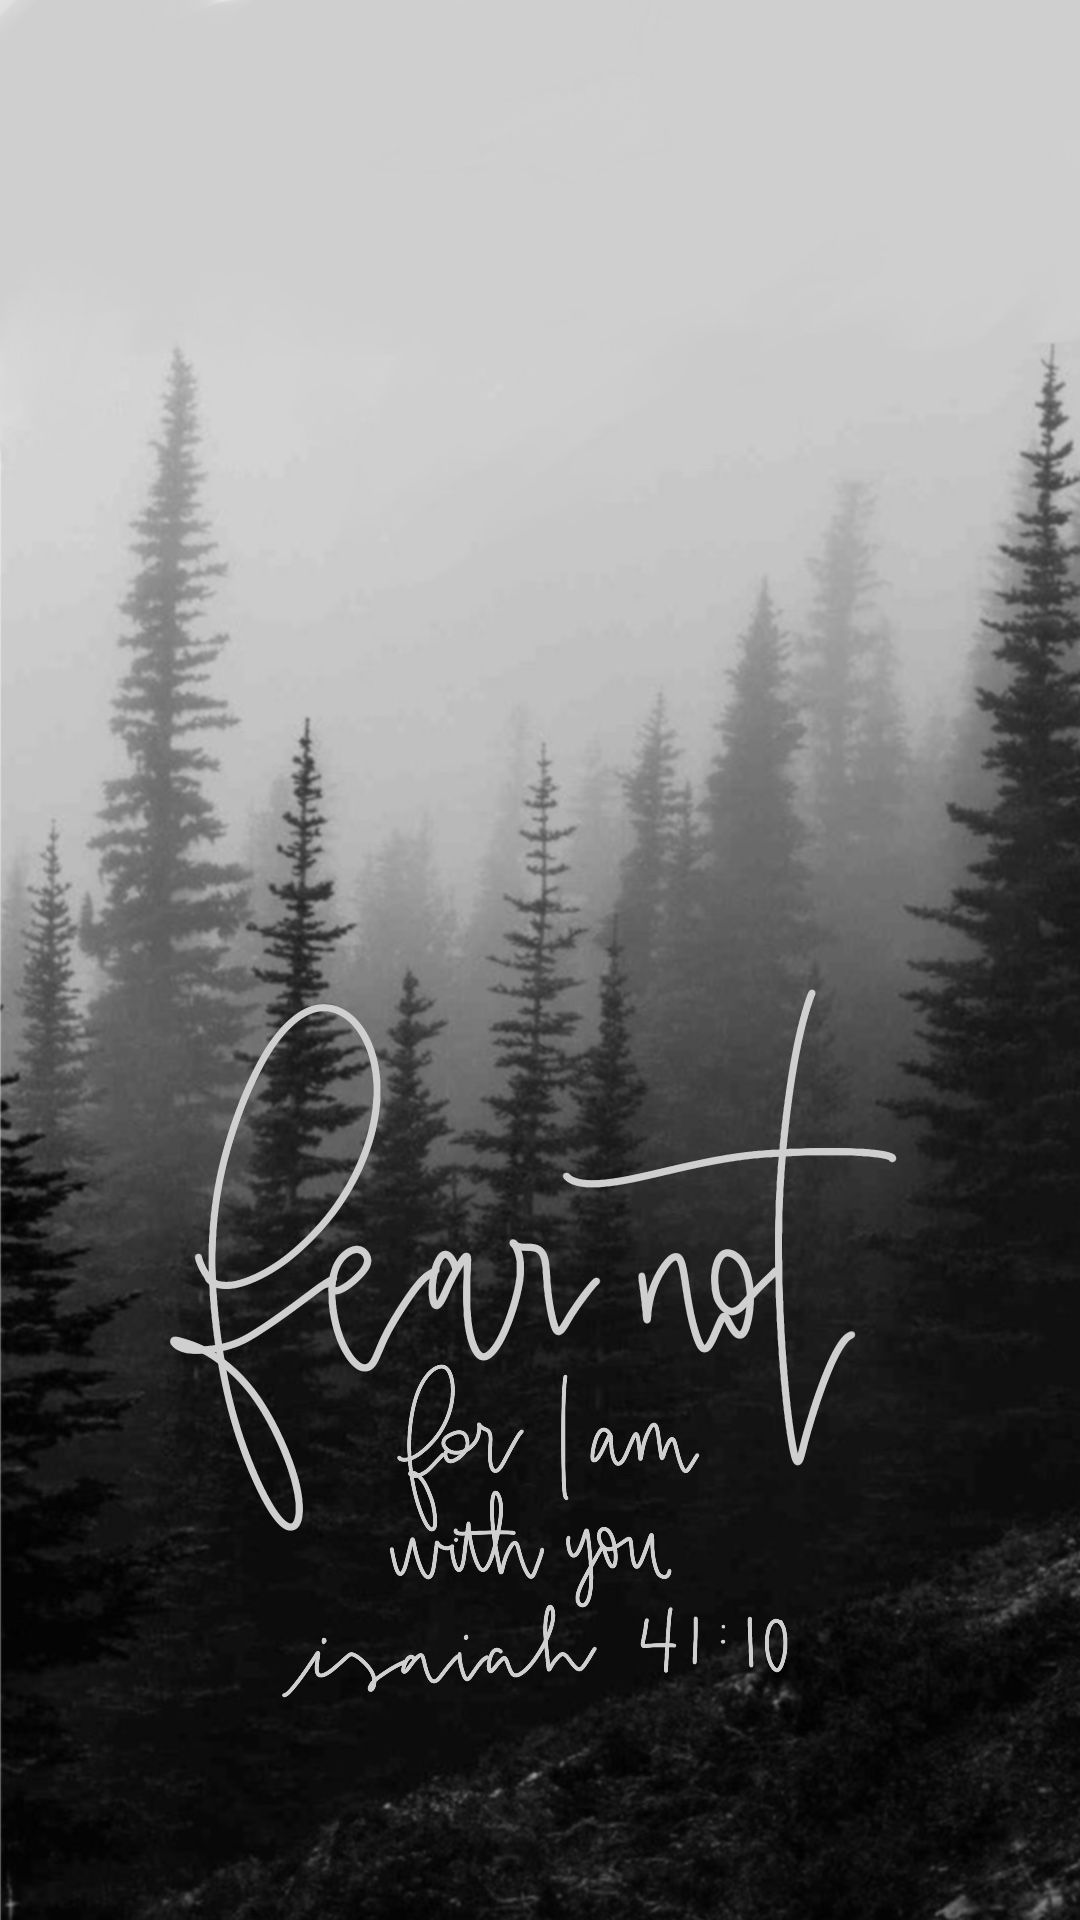 Fear not for I am with you Isaiah 41:10